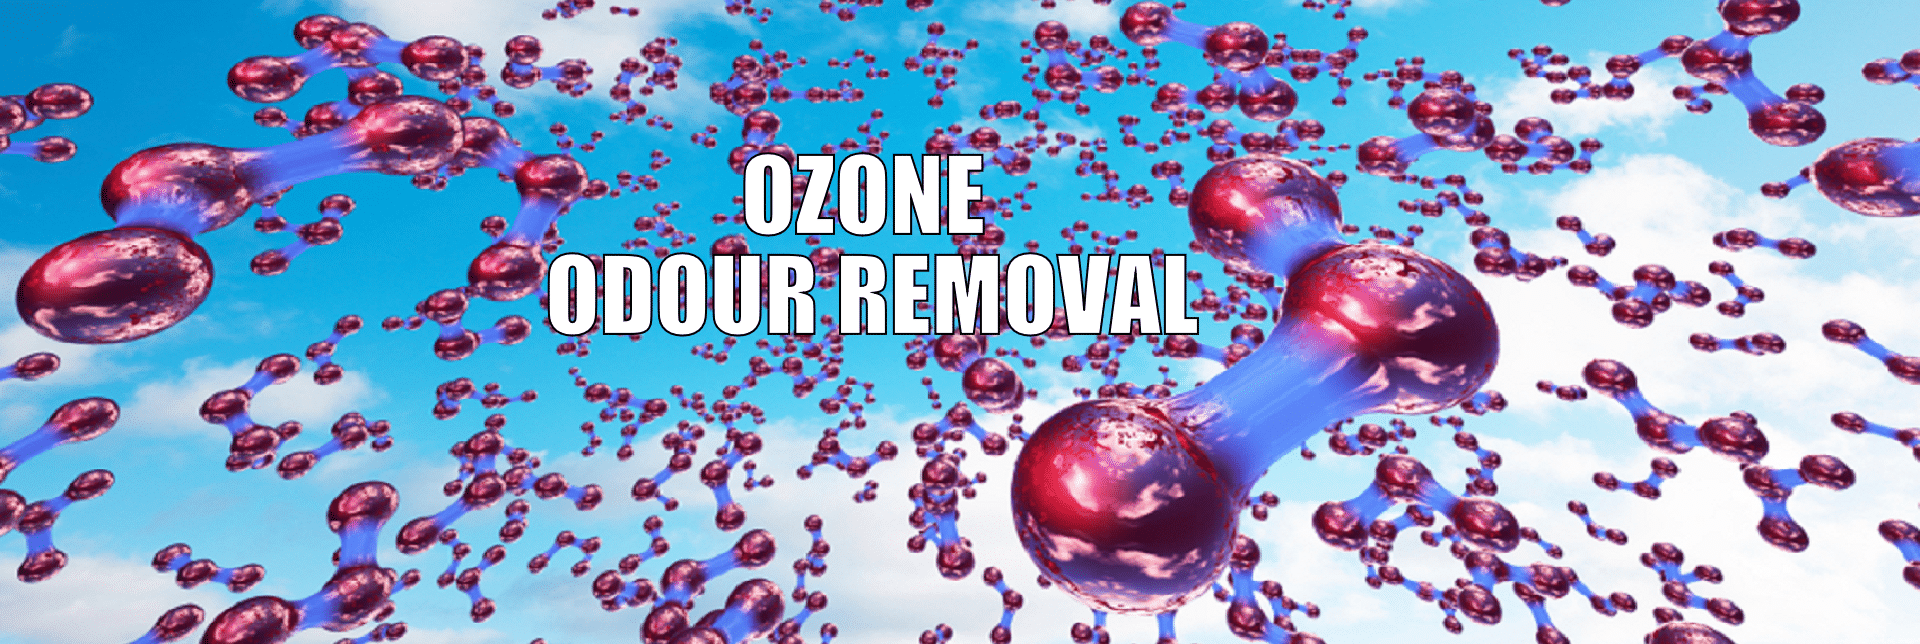 Ozone Rental Services in Ottawa, Ontario